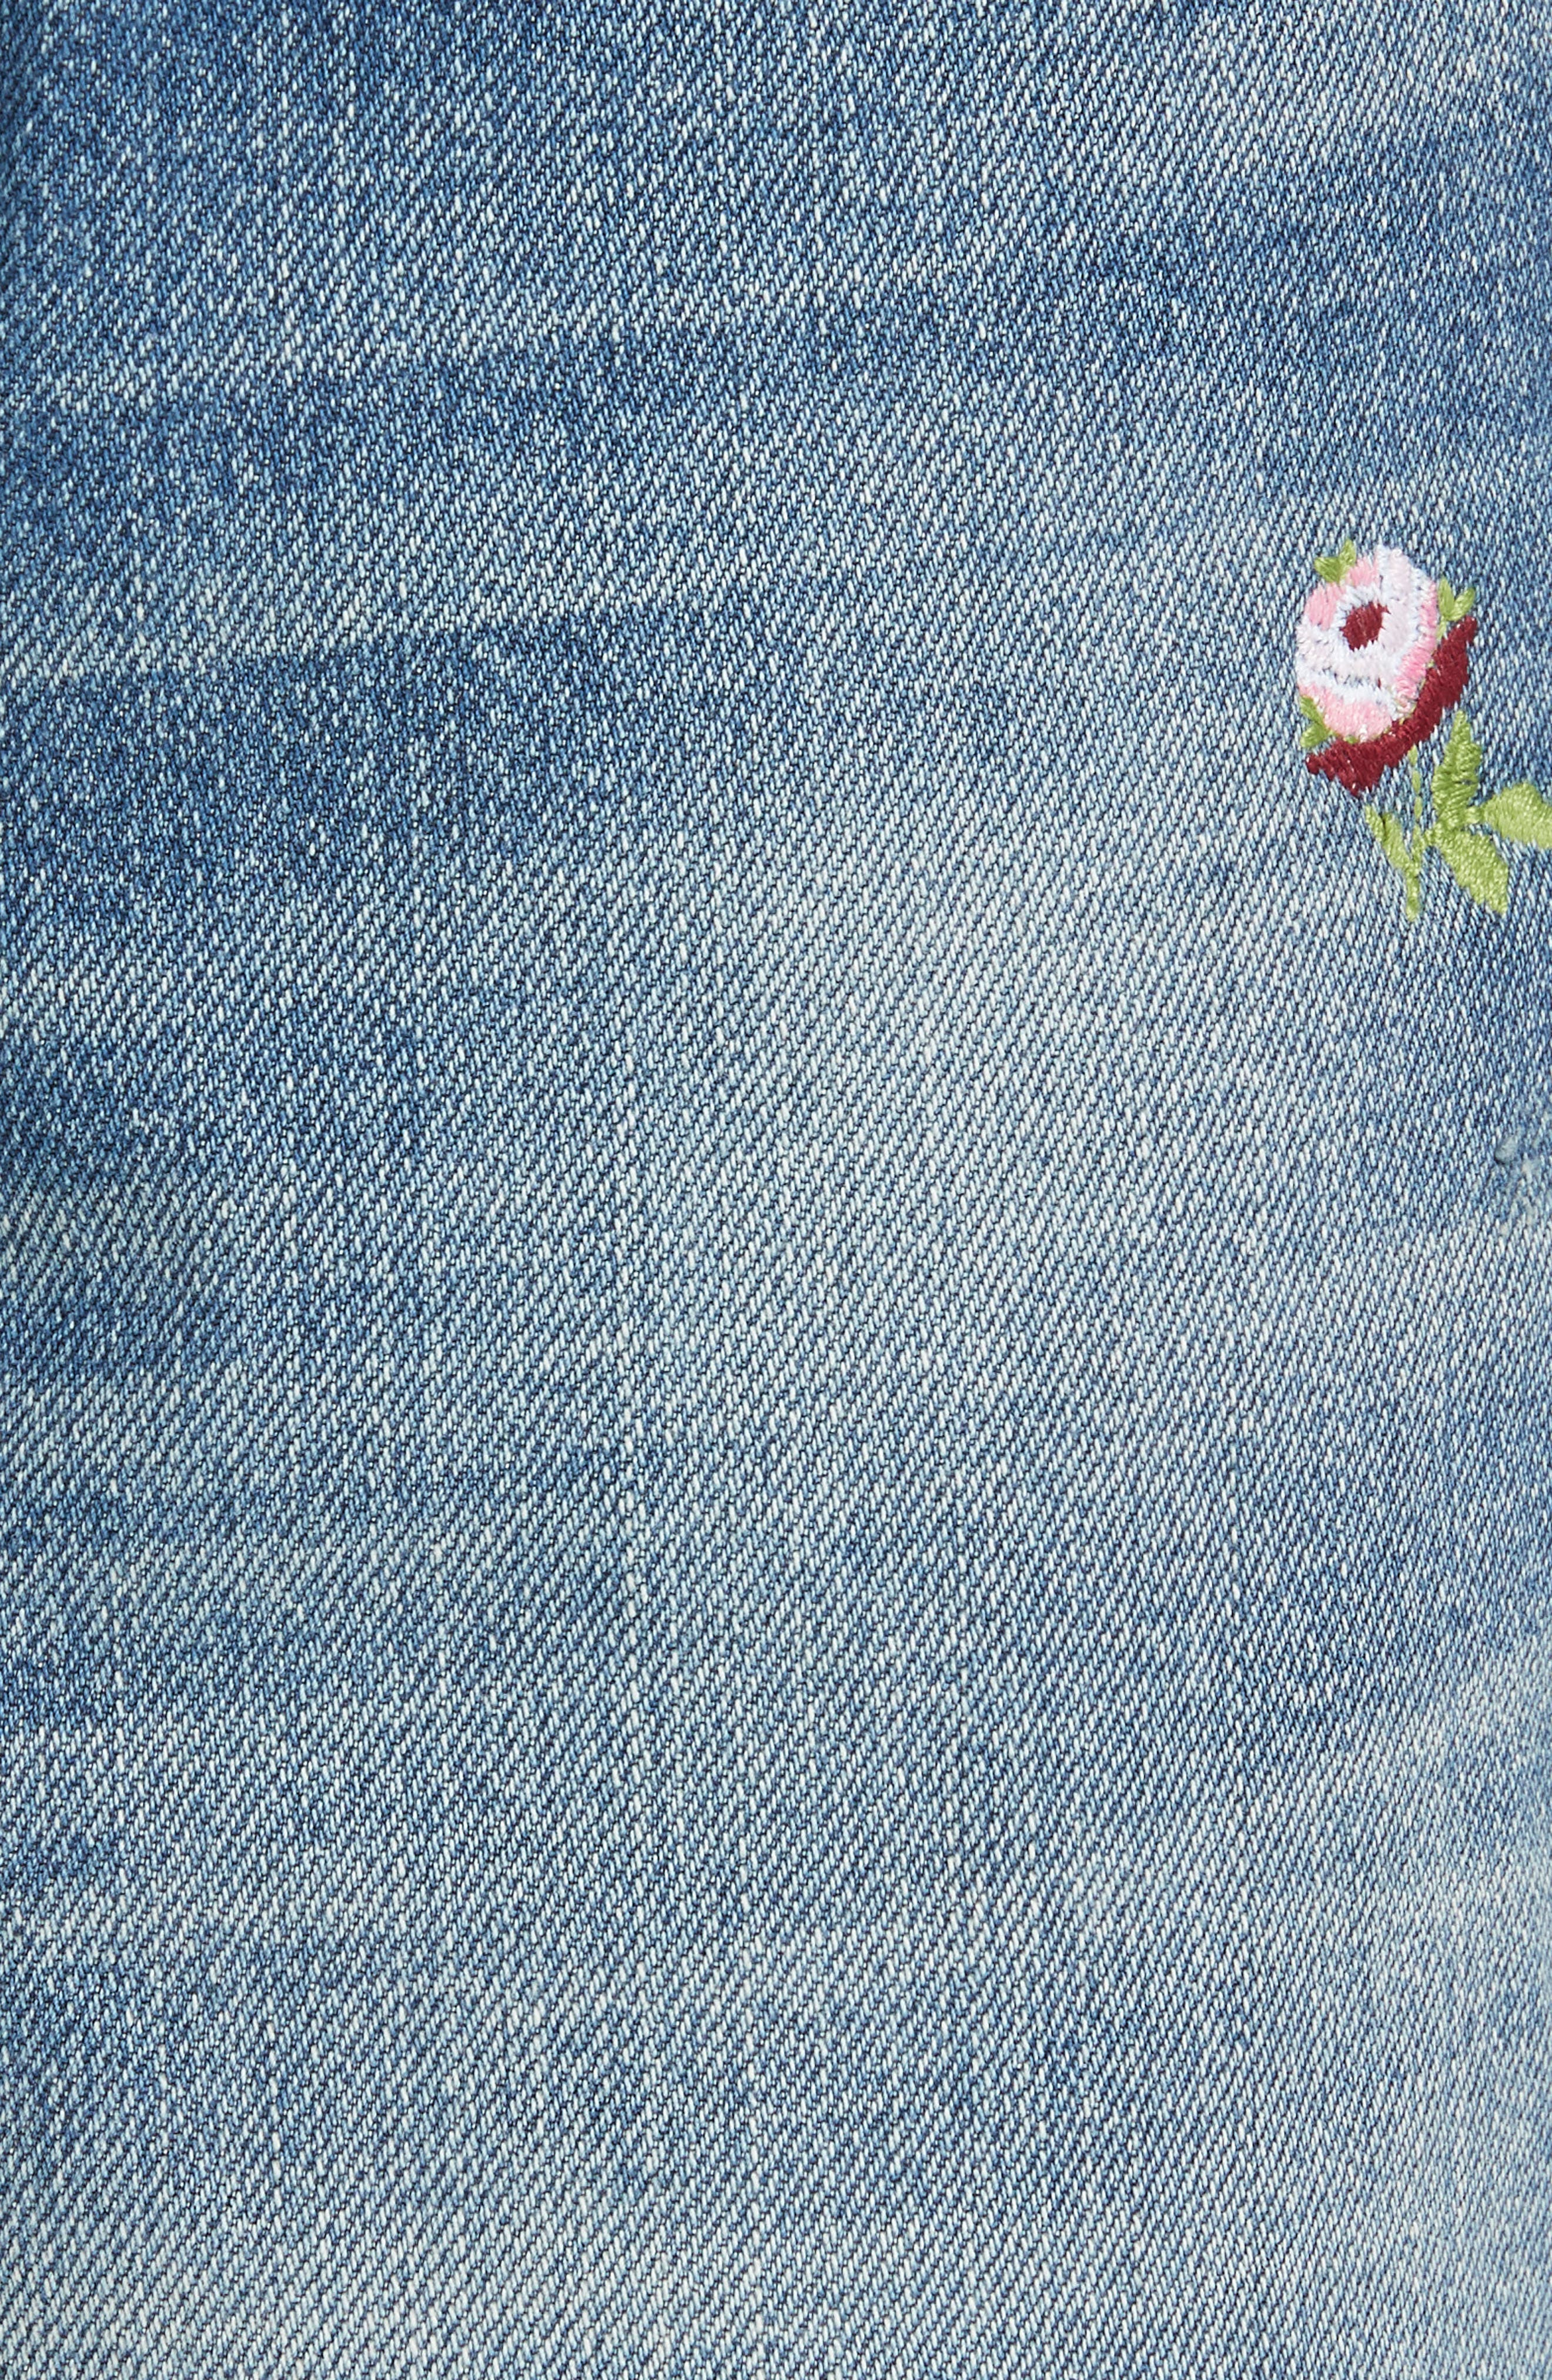 The Rigid Fellow Floral Embroidered Jeans,                             Alternate thumbnail 5, color,                             PRAIRIE WASH W/ ROSETTE